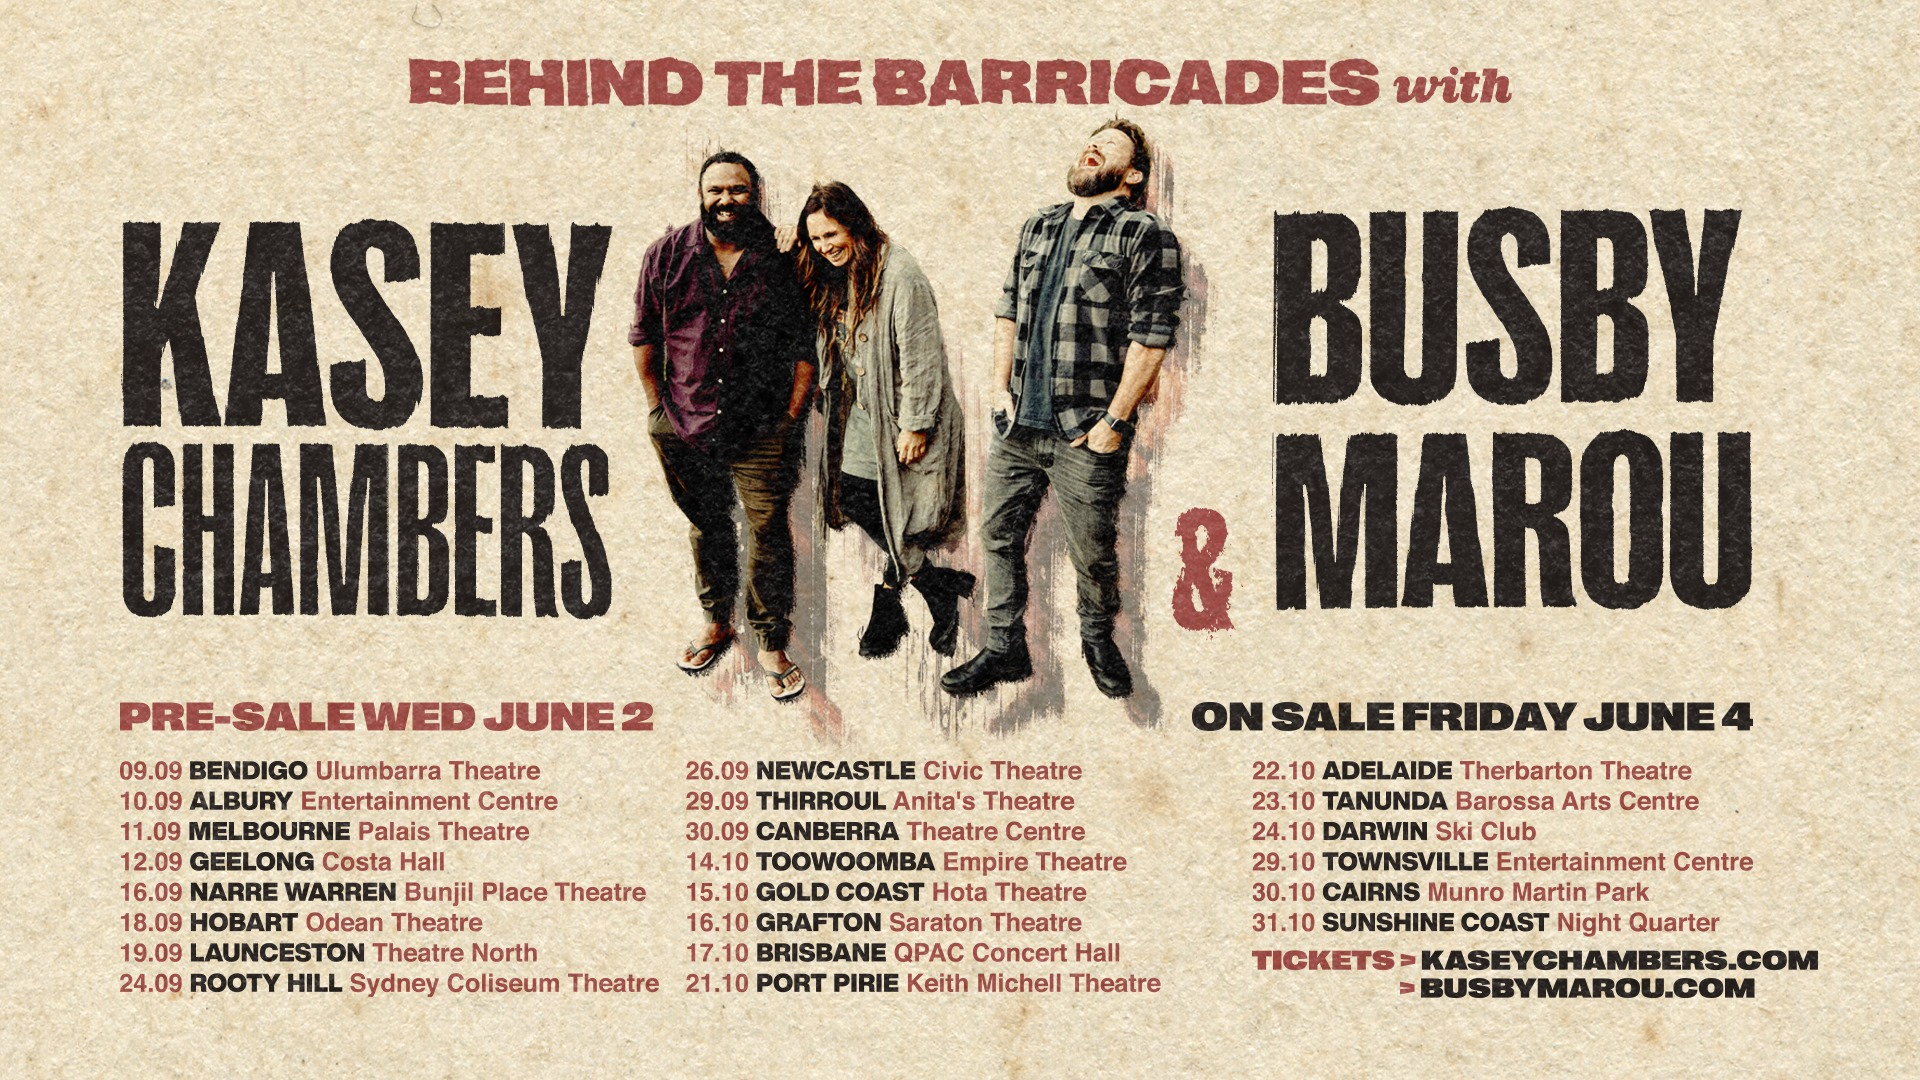 Kasey Chambers & Busby Marou – Behind The Barricades Tour